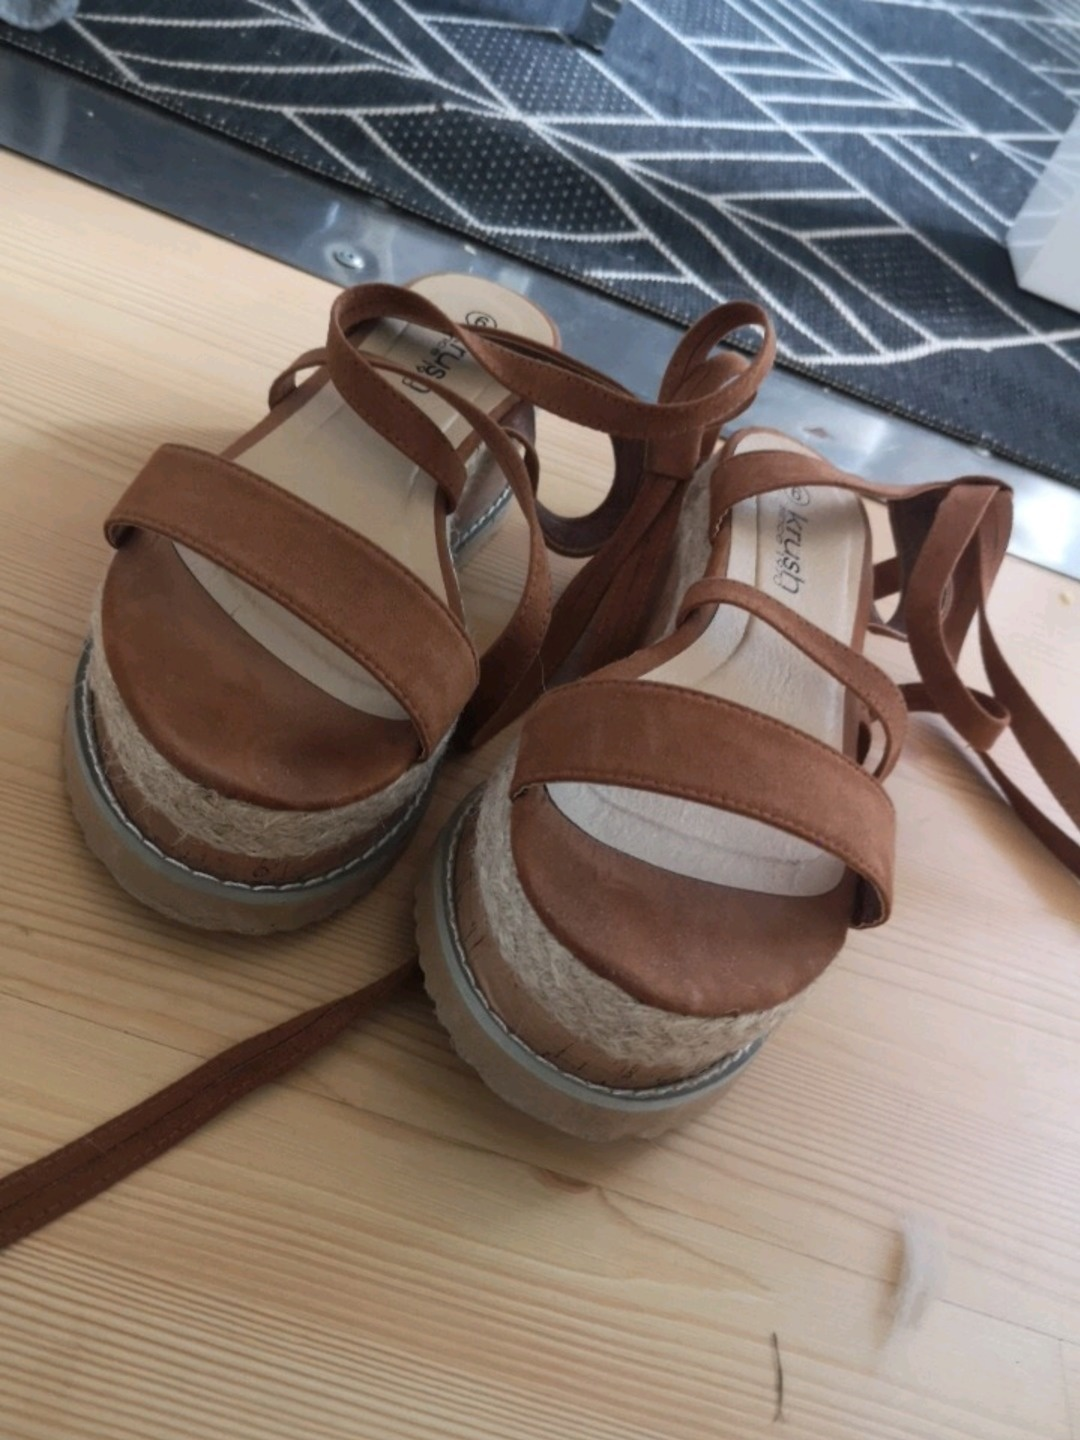 Women's sandals & slippers - KRUSH photo 2